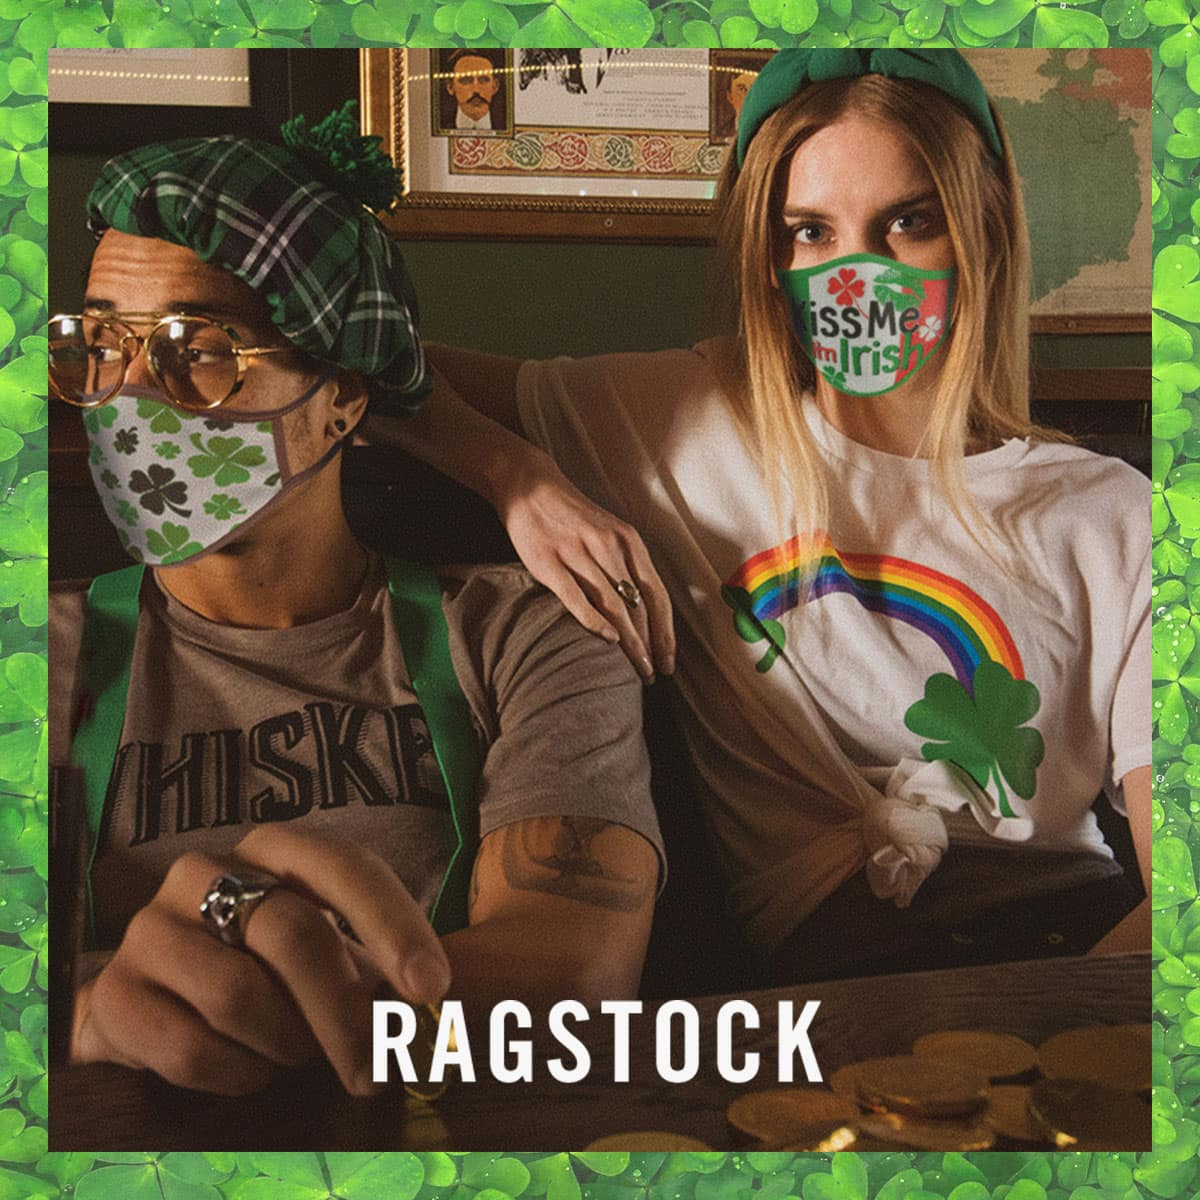 St. Patrick's Day at Ragstock from Ragstock